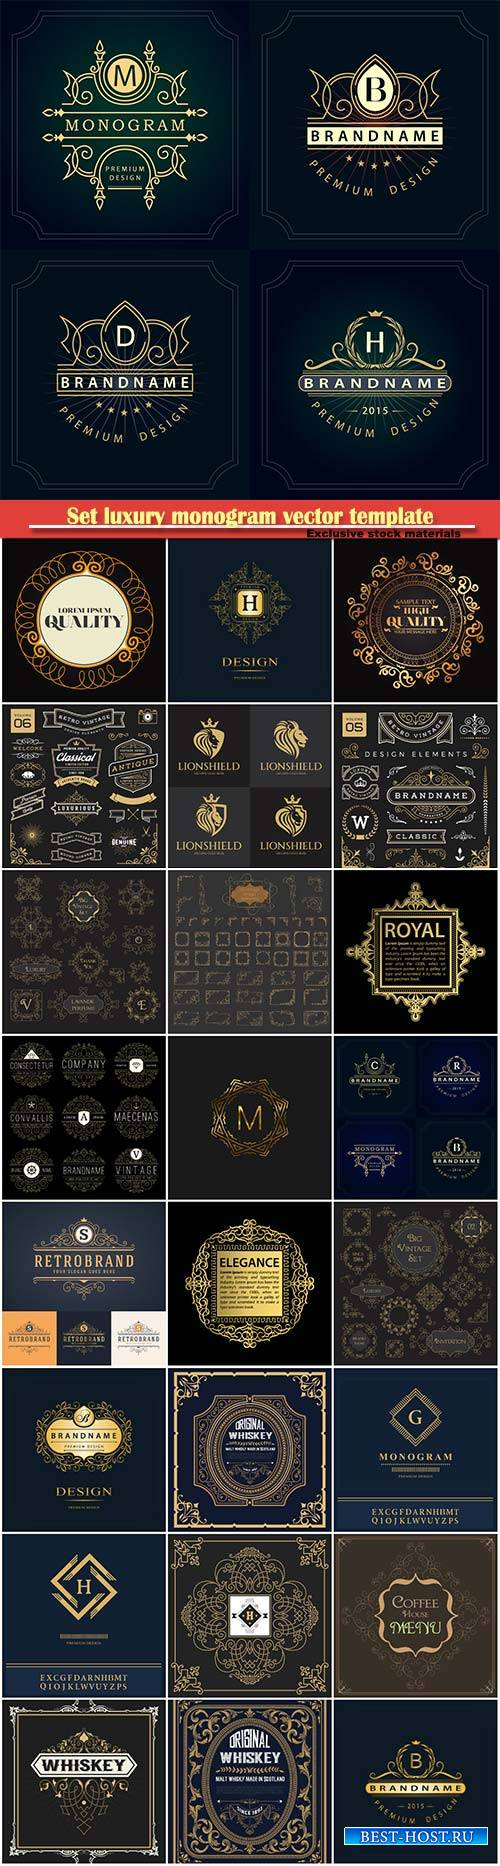 Set luxury monogram vector template, logos, badges, symbols # 12